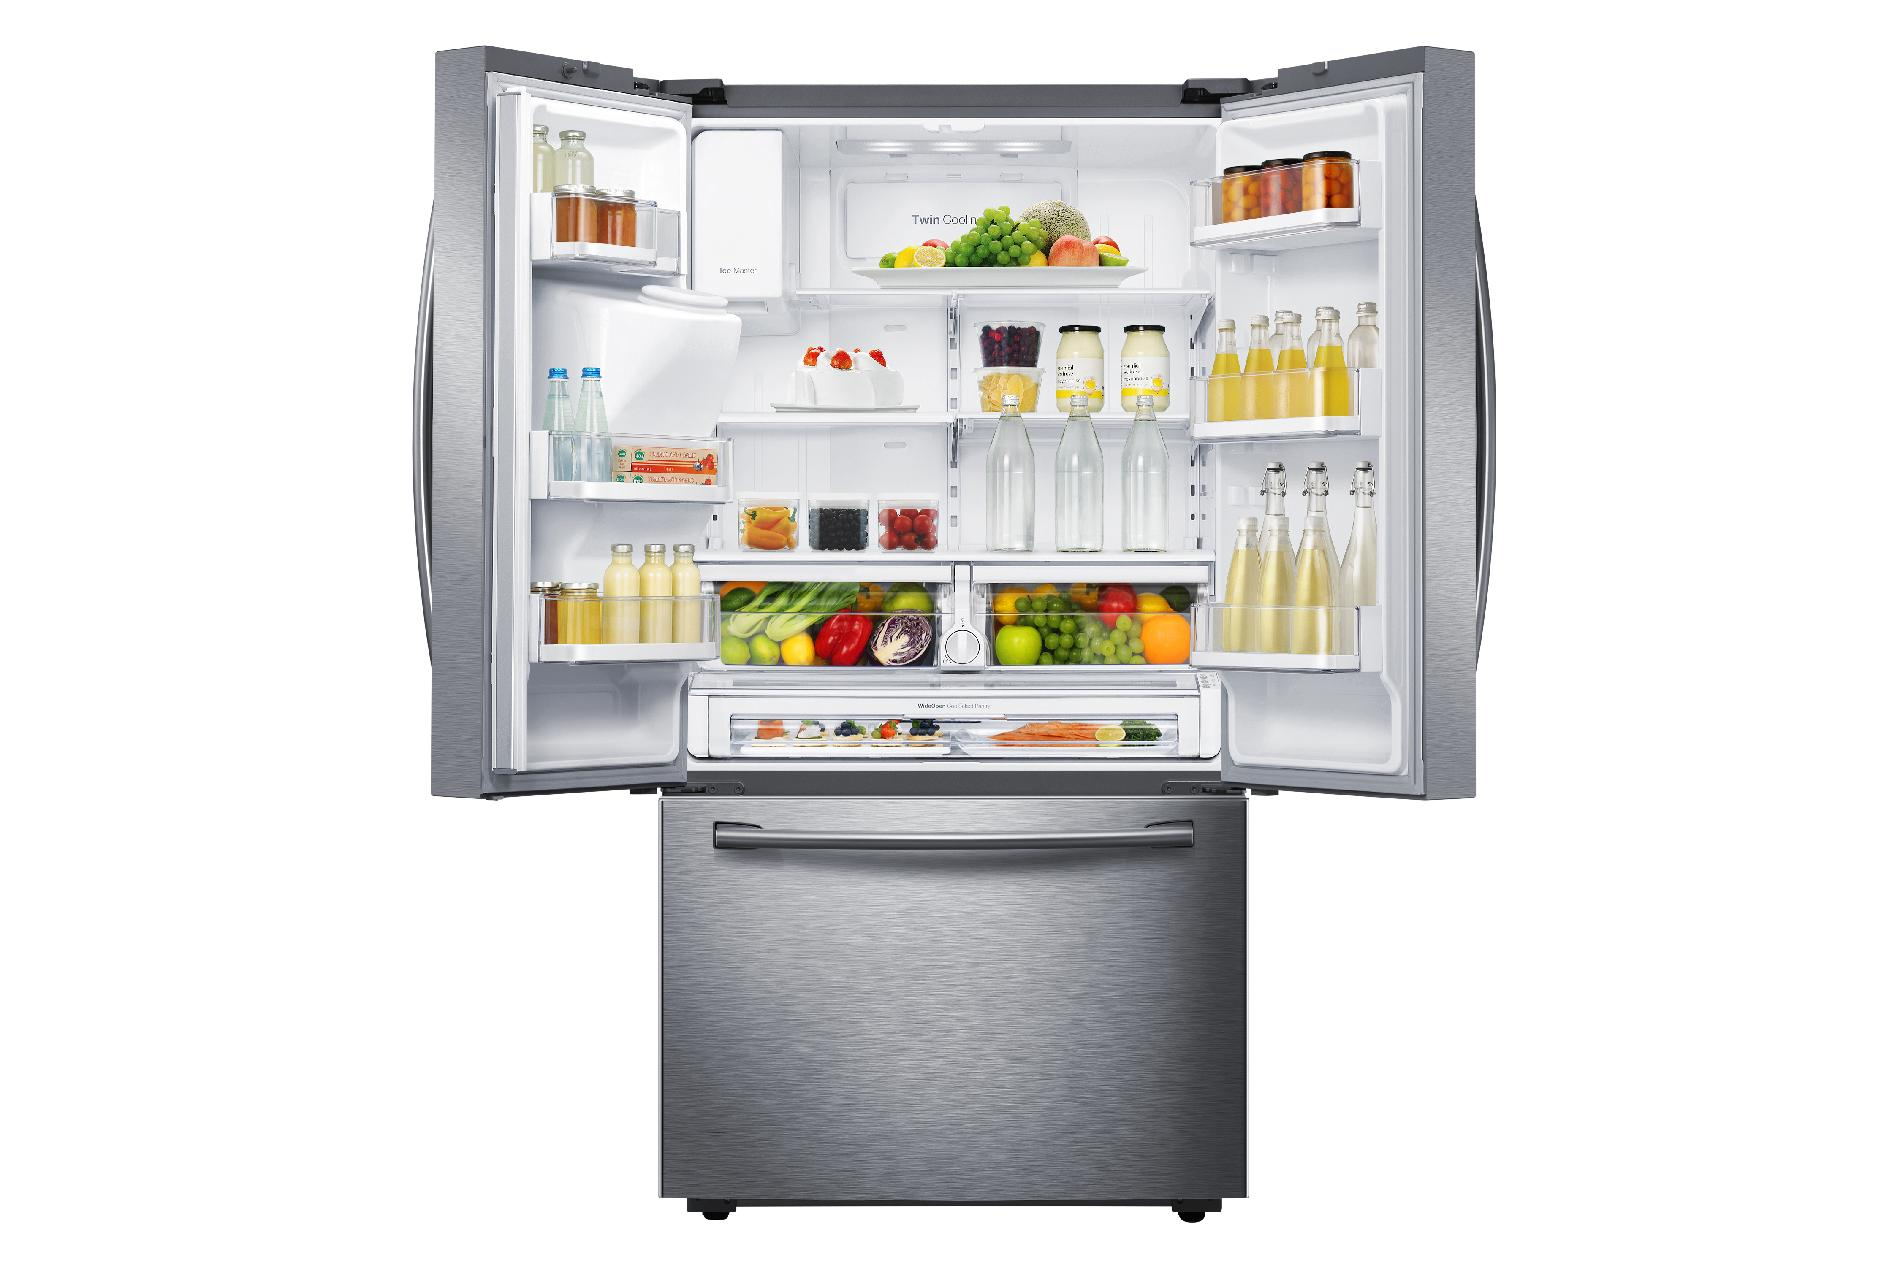 Samsung 22.5 cu. ft. Counter-Depth French Door Refrigerator - Stainless Steel